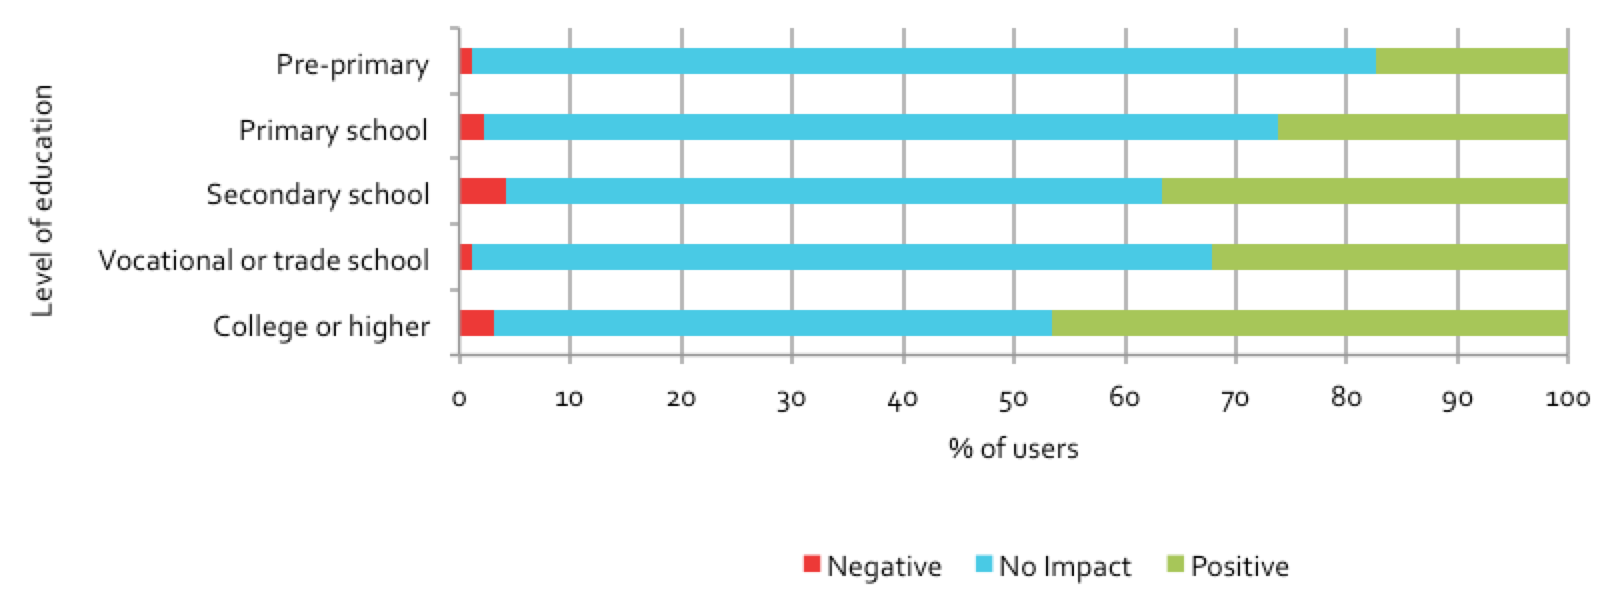 Figure 5.22: Users reporting positive impact on government, by education level